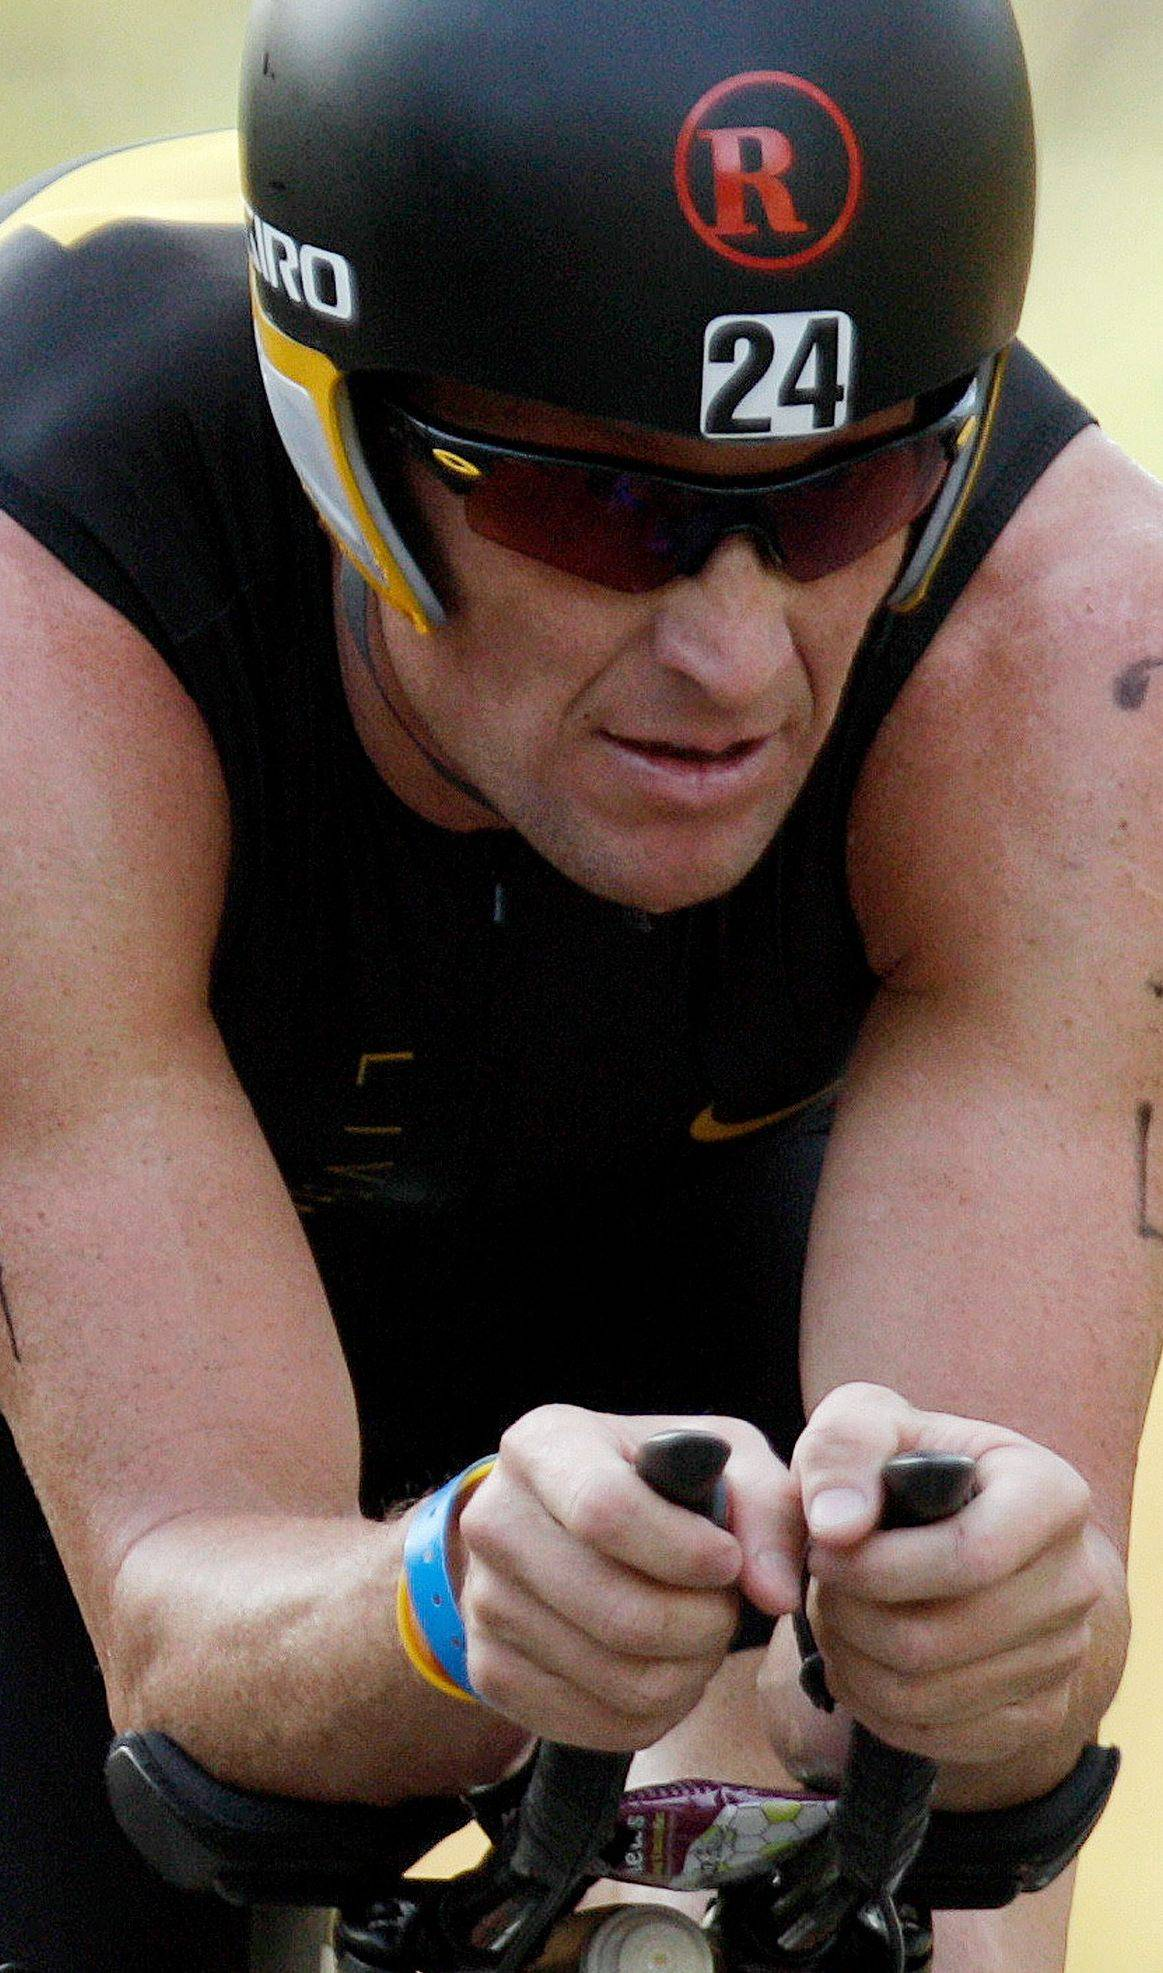 In this file photo, Lance Armstrong competes in this year's Ironman Panama 70.3. triathlon in Panama City, Panama. The seven-time Tour de France winner Monday filed a lawsuit in Austin, Texas, arguing the U.S. Anti-Doping Agency violates the constitutional rights of athletes when it brings charges against them.